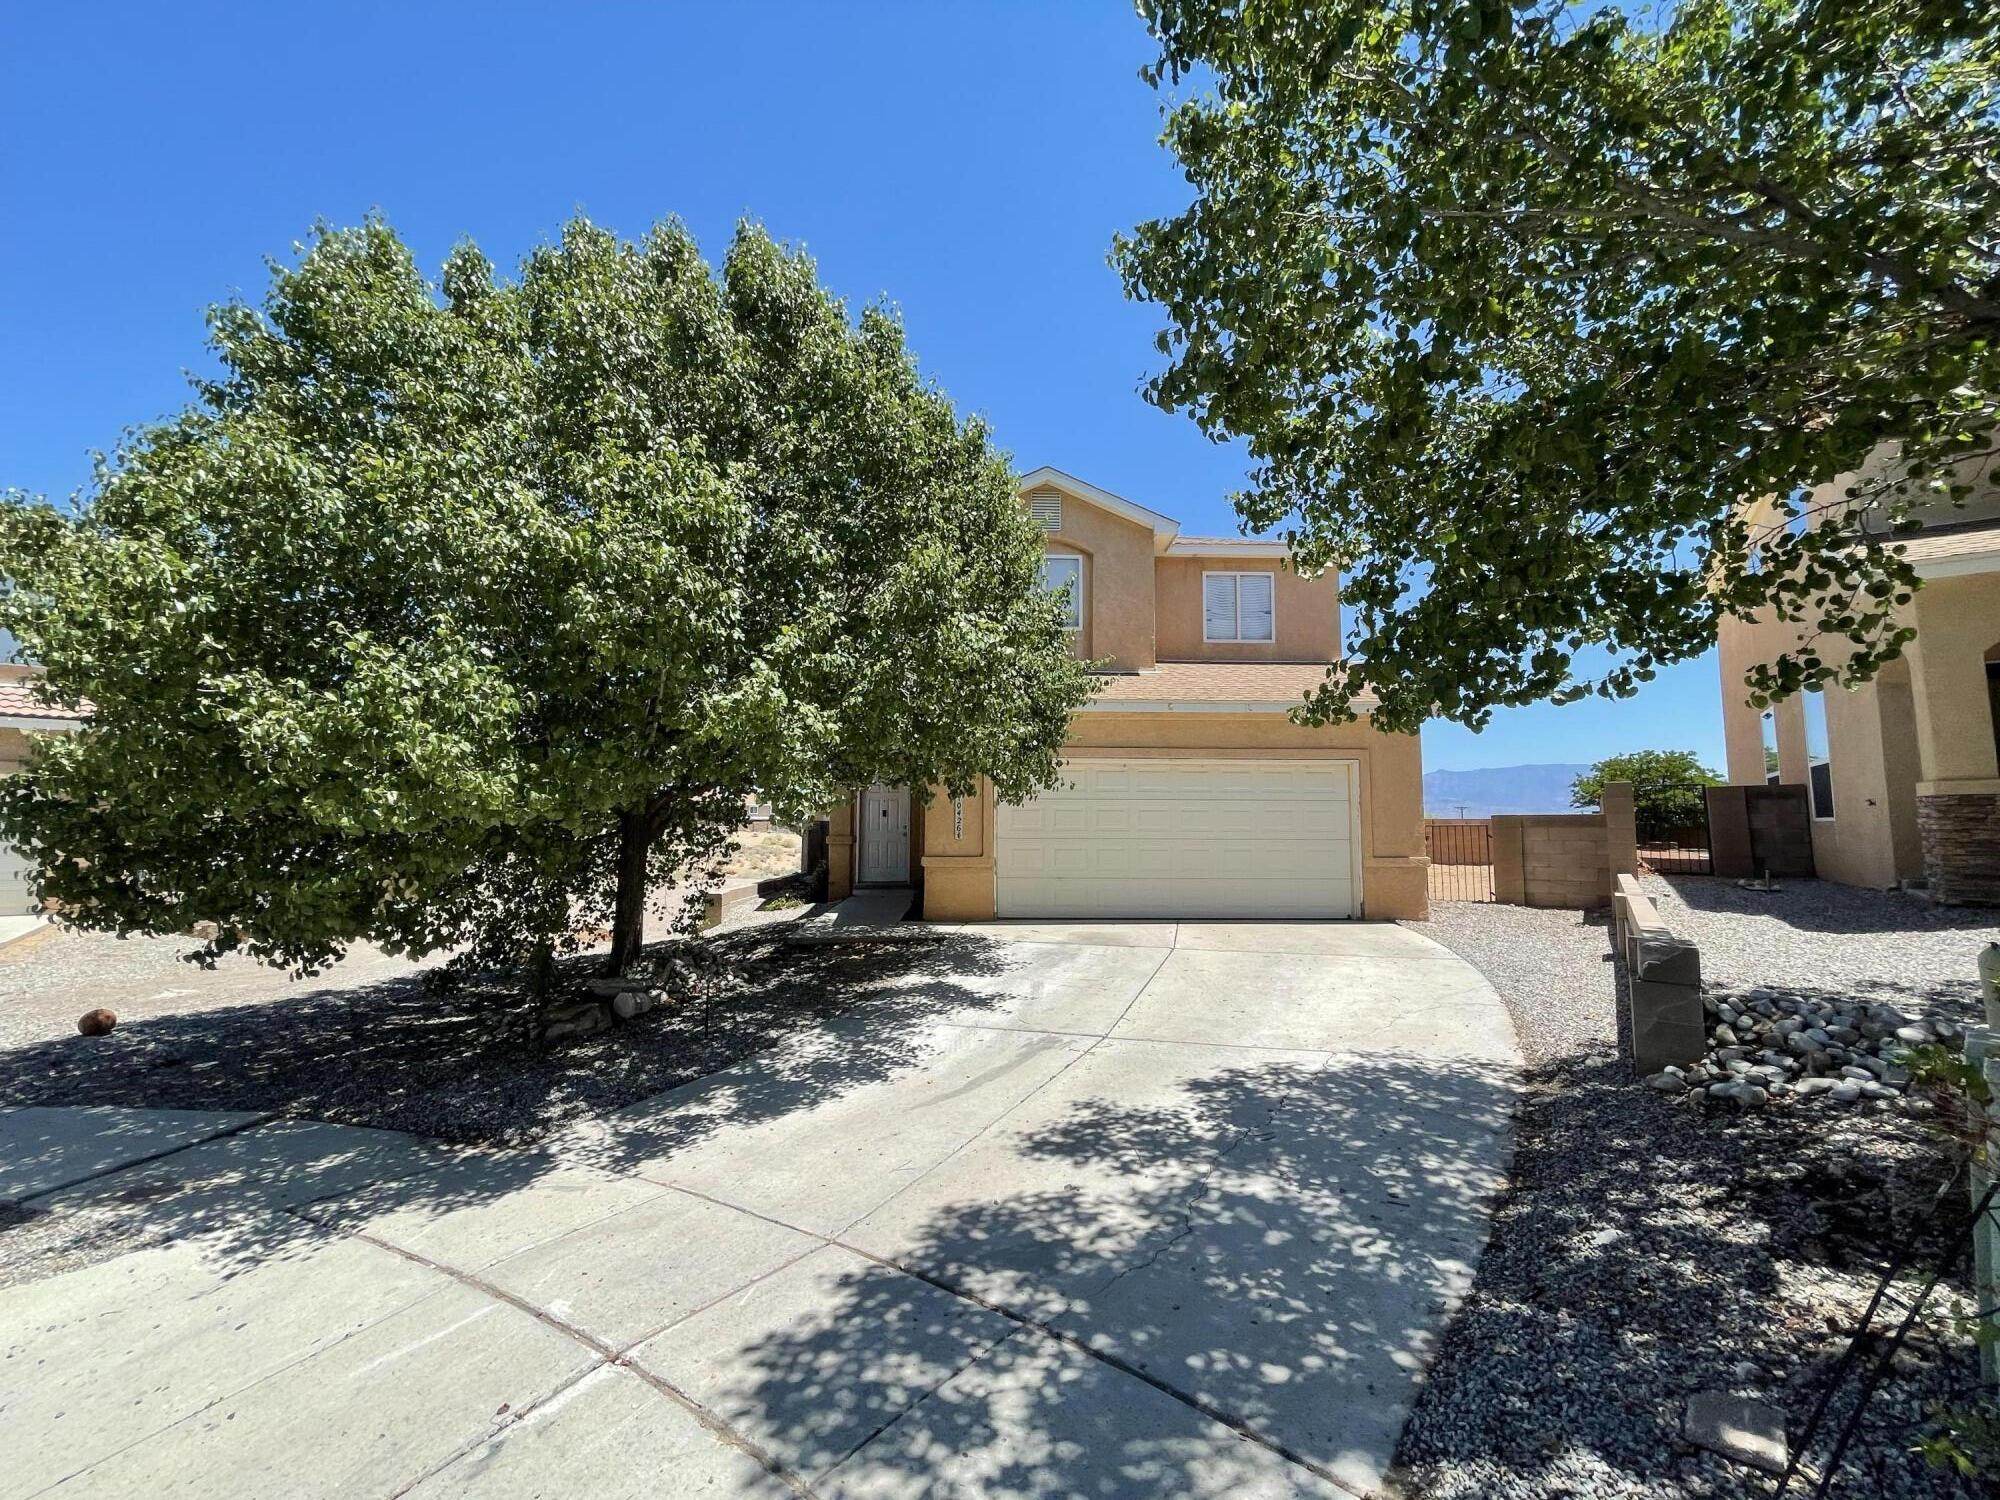 Take a look at this entertainer's dream home, featuring a large corner cul de sac lot boasting epic views of the Sandia Mountains! The open concept living, dining, and formal spaces flow seamlessly and are perfect for all ages and life stages. You will find four oversized bedrooms, three bathrooms. A fantastic opportunity for someone looking to make this house their own! This one won't last. Could you schedule a showing before it's gone? Complete photo package coming 7/9/2021. Cash buyers preferred; with a bit of touch up you can quickly tap into a lot of sweat equity.